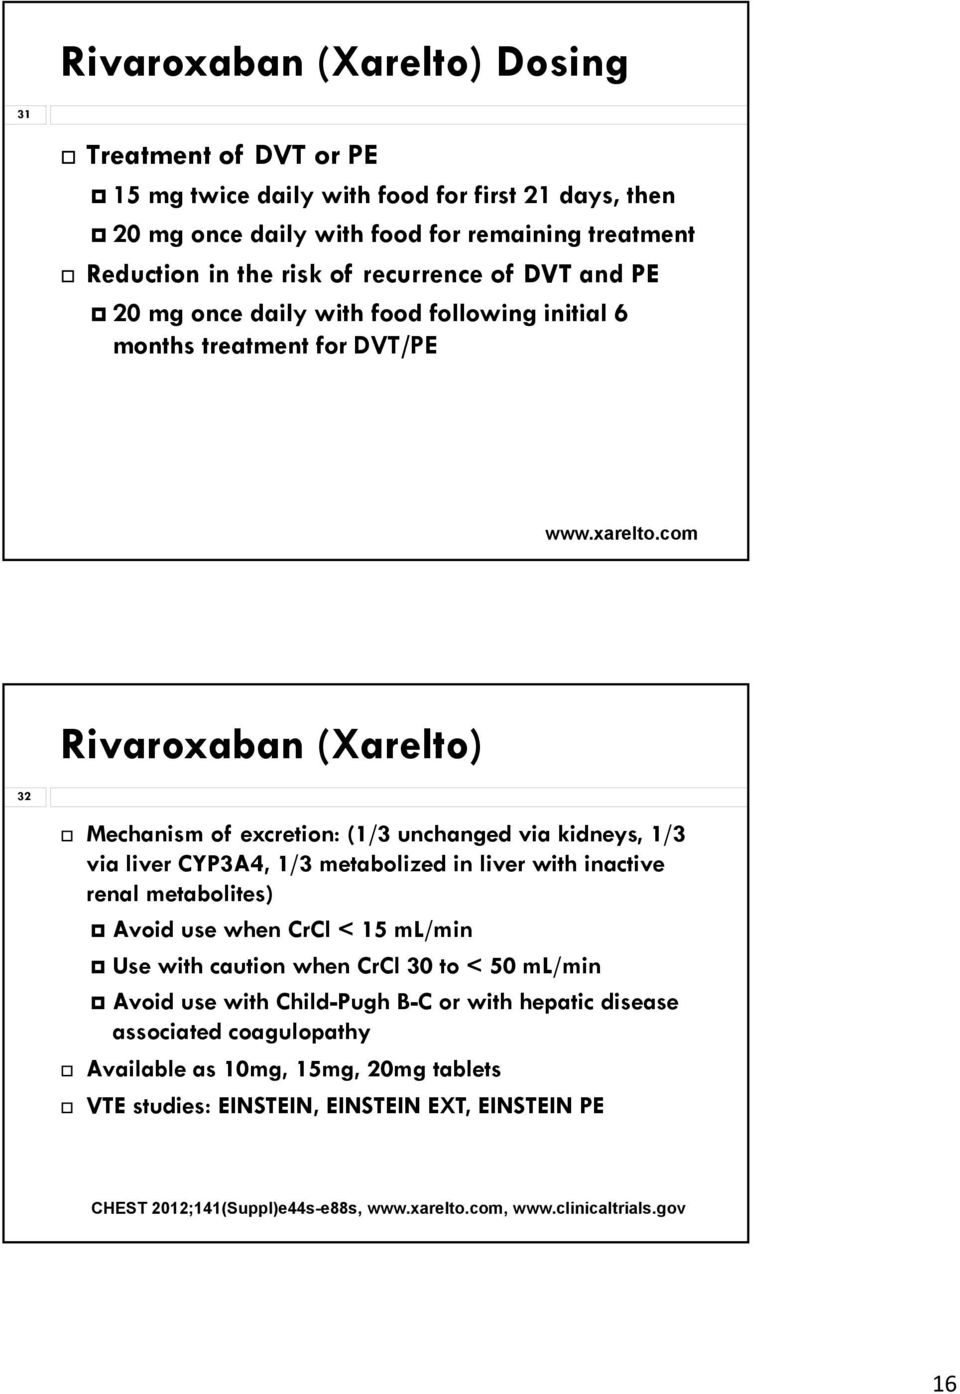 com Rivaroxaban (Xarelto) 32 Mechanism of excretion: (1/3 unchanged via kidneys, 1/3 via liver CYP3A4, 1/3 metabolized in liver with inactive renal metabolites) Avoid use when CrCl < 15 ml/min